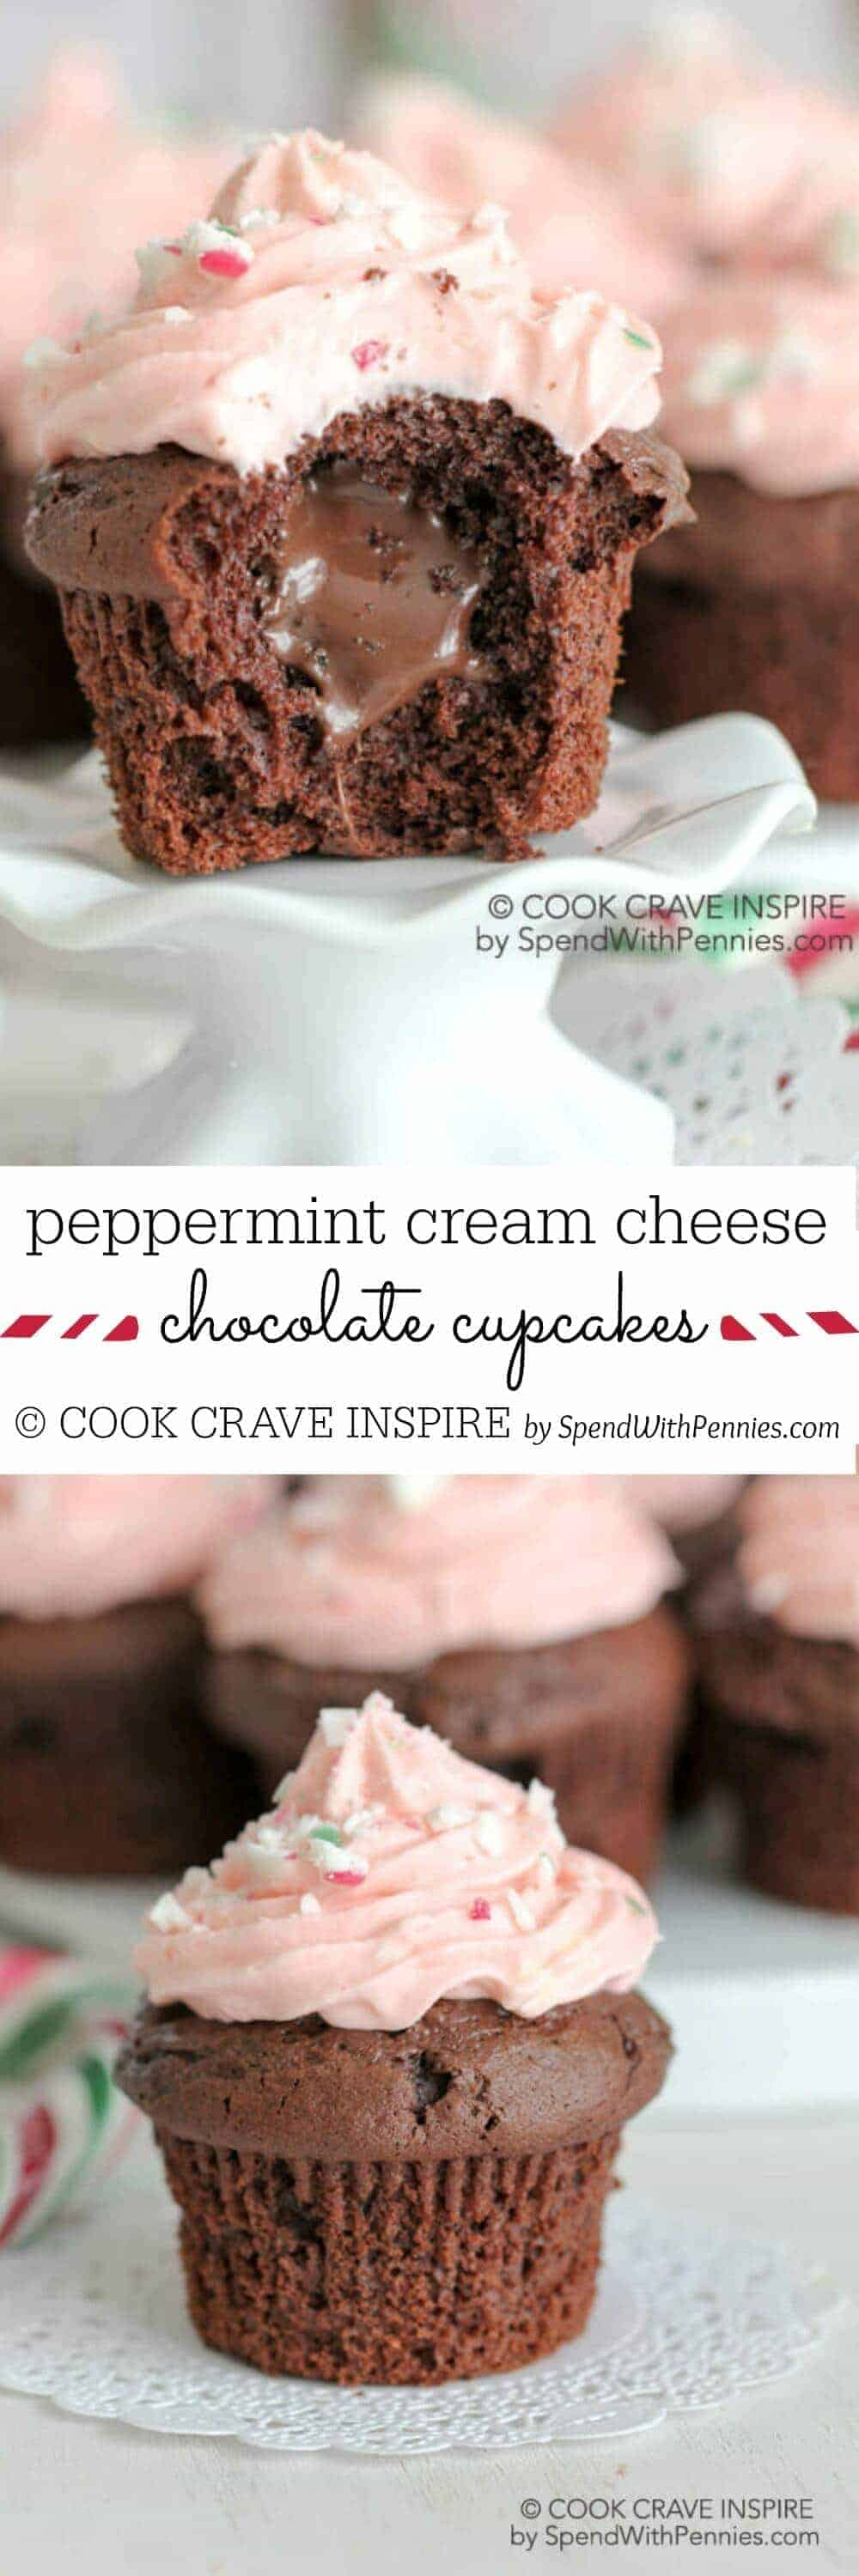 Peppermint Cream Cheese Chocolate Cupcakes with a title